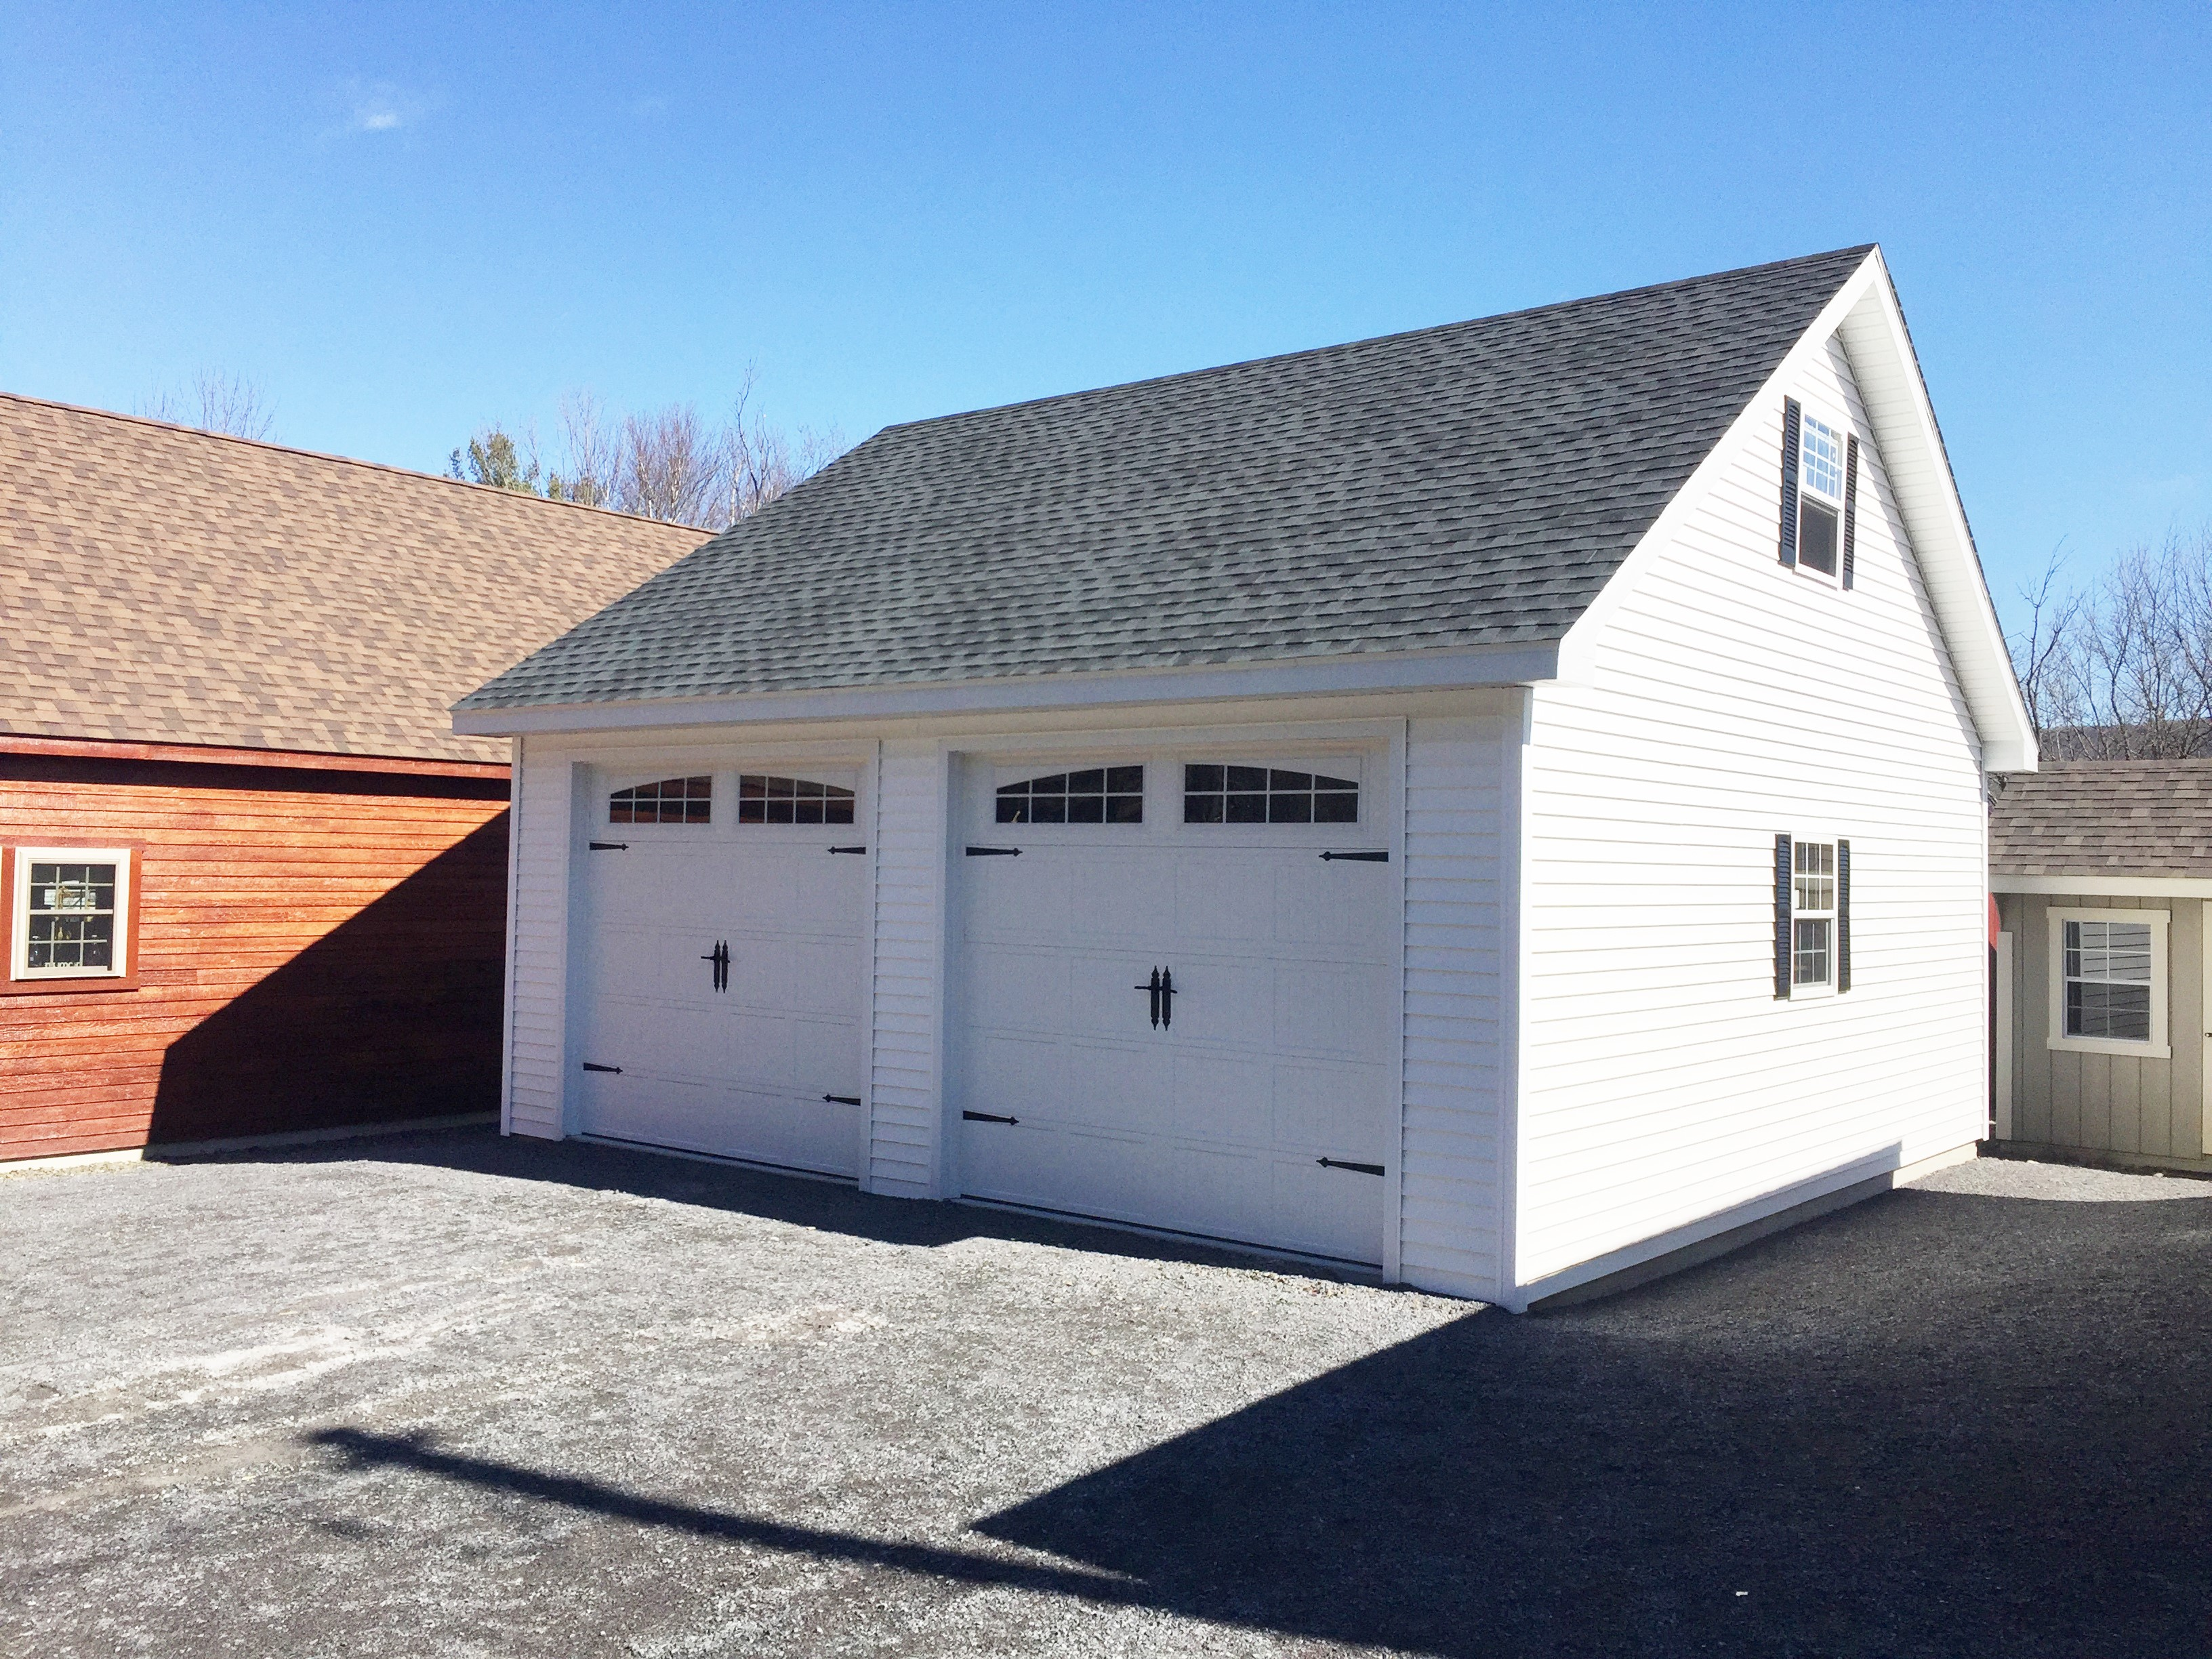 Car Being Built Garage : Built on site custom amish garages in oneonta ny